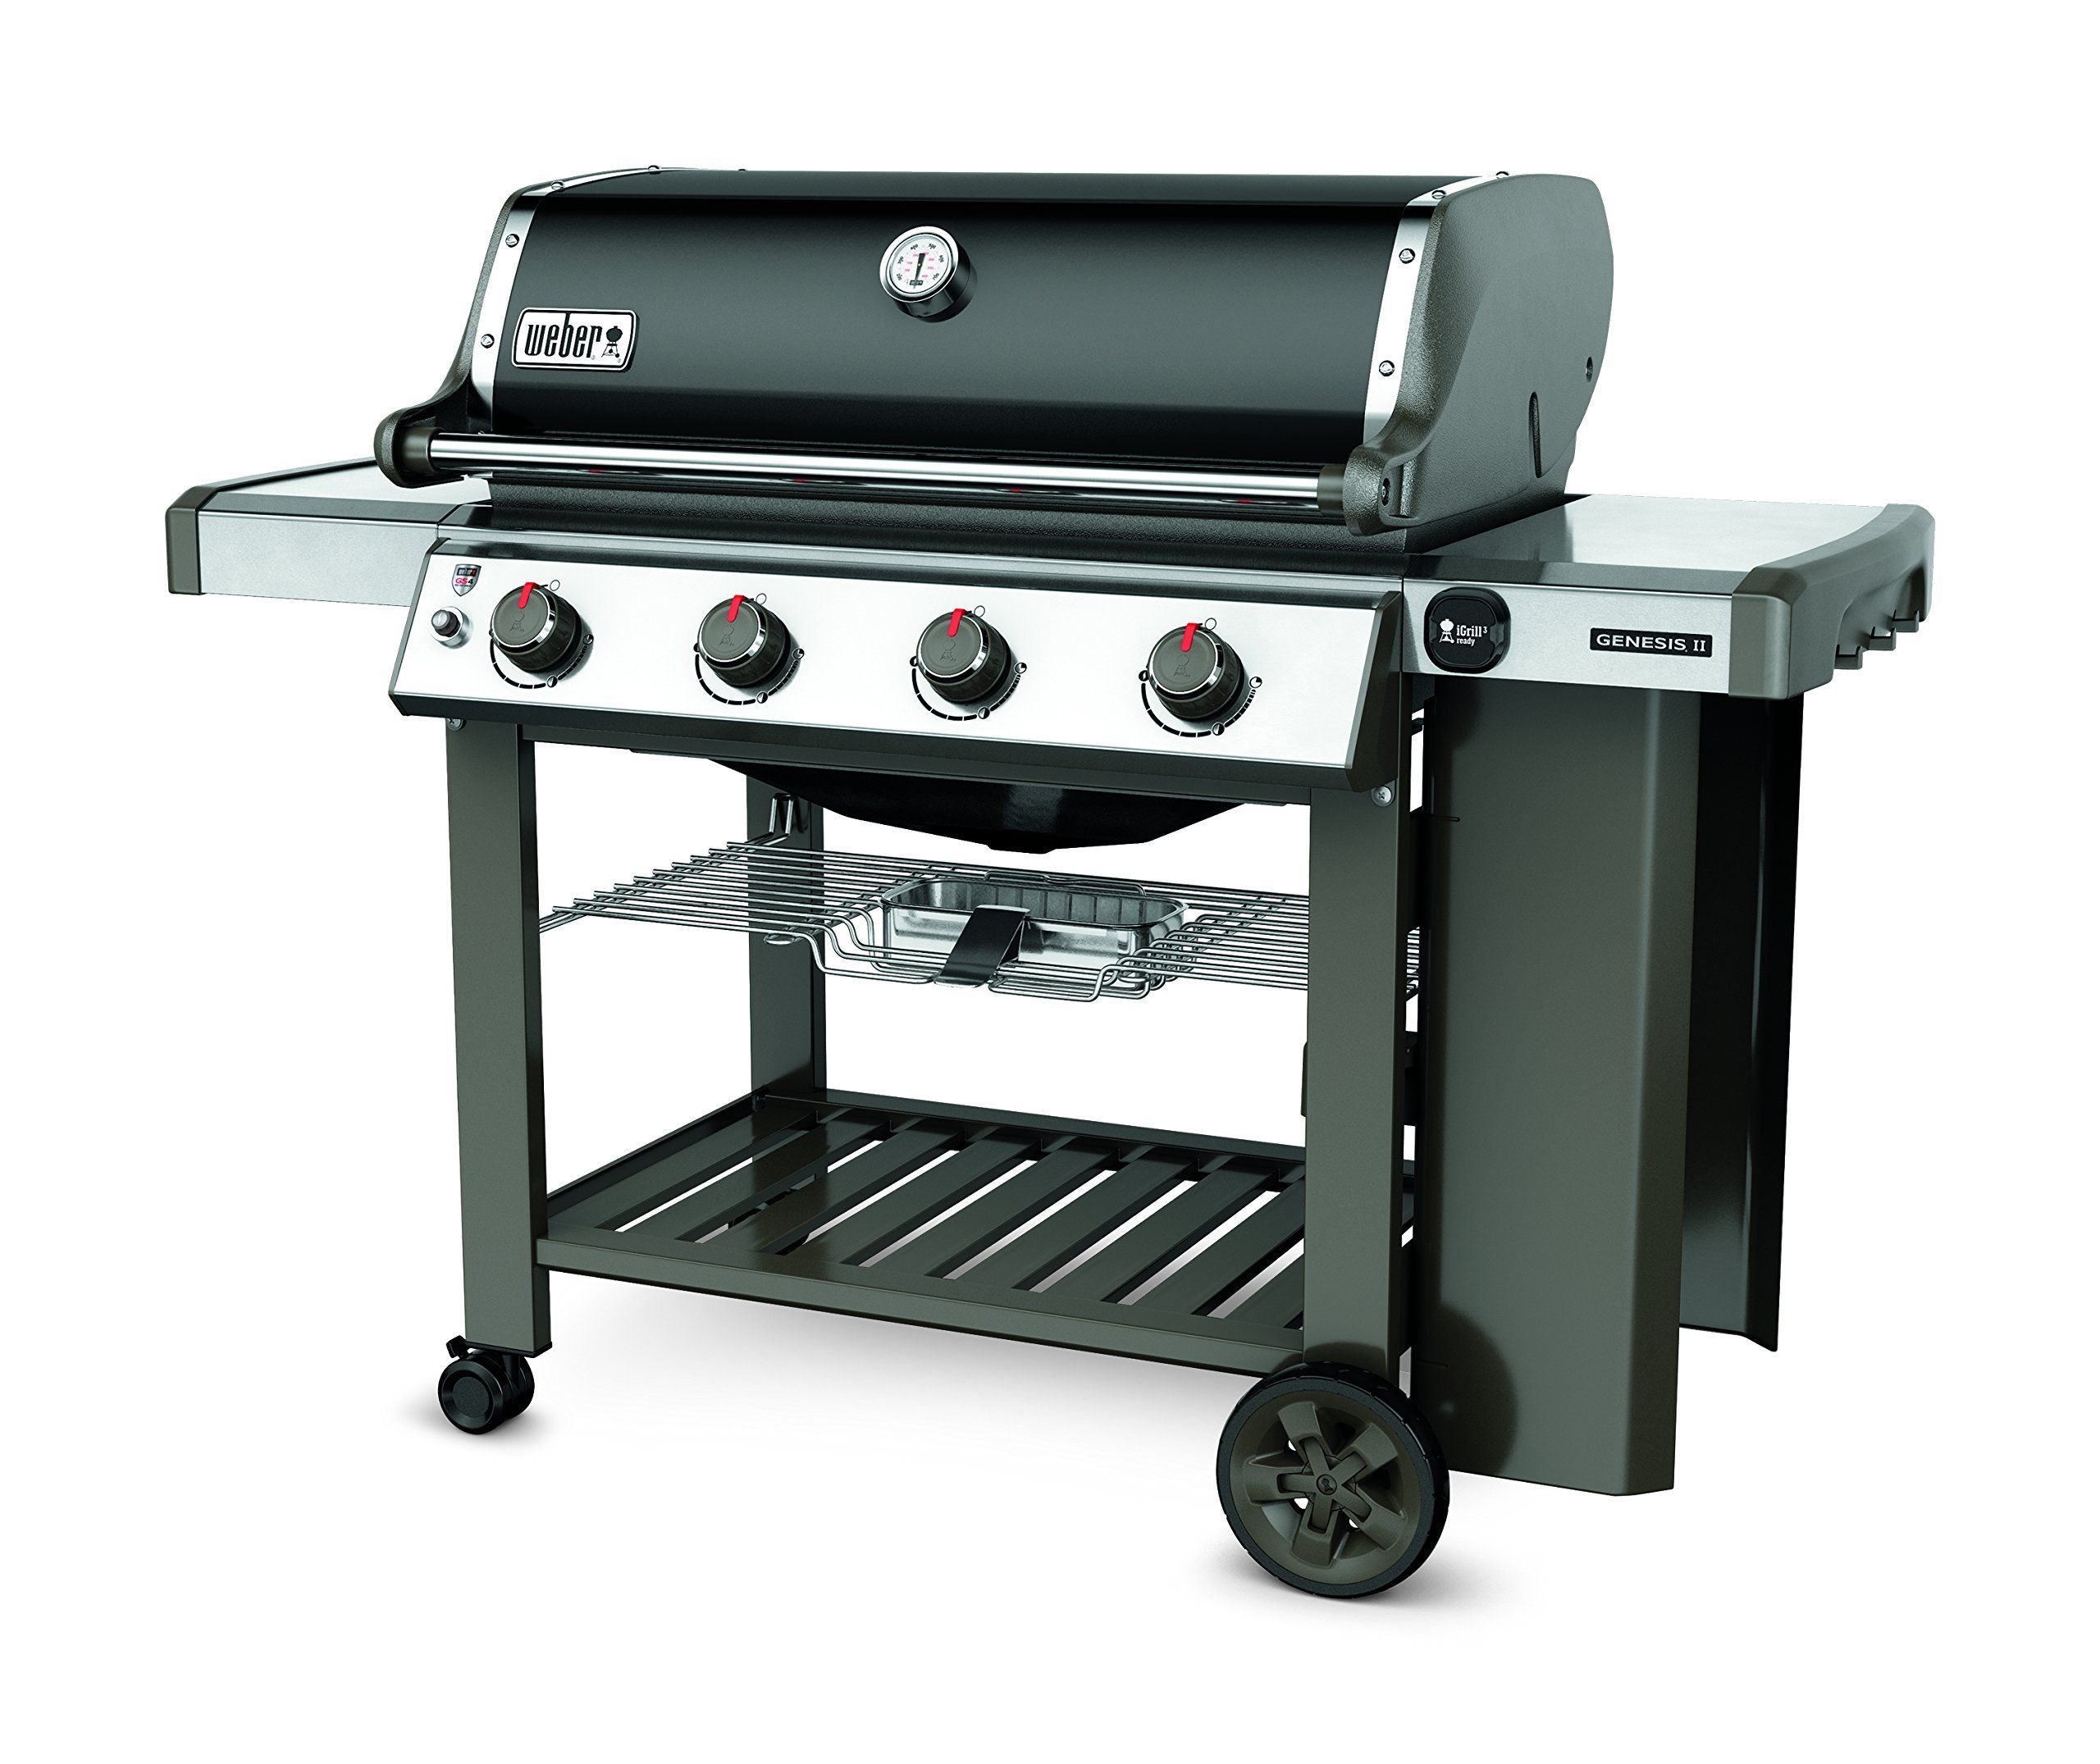 Weber Genesis Ii E 410 Natural Gas Grill With Images Natural Gas Grill Gas Grill Propane Gas Grill